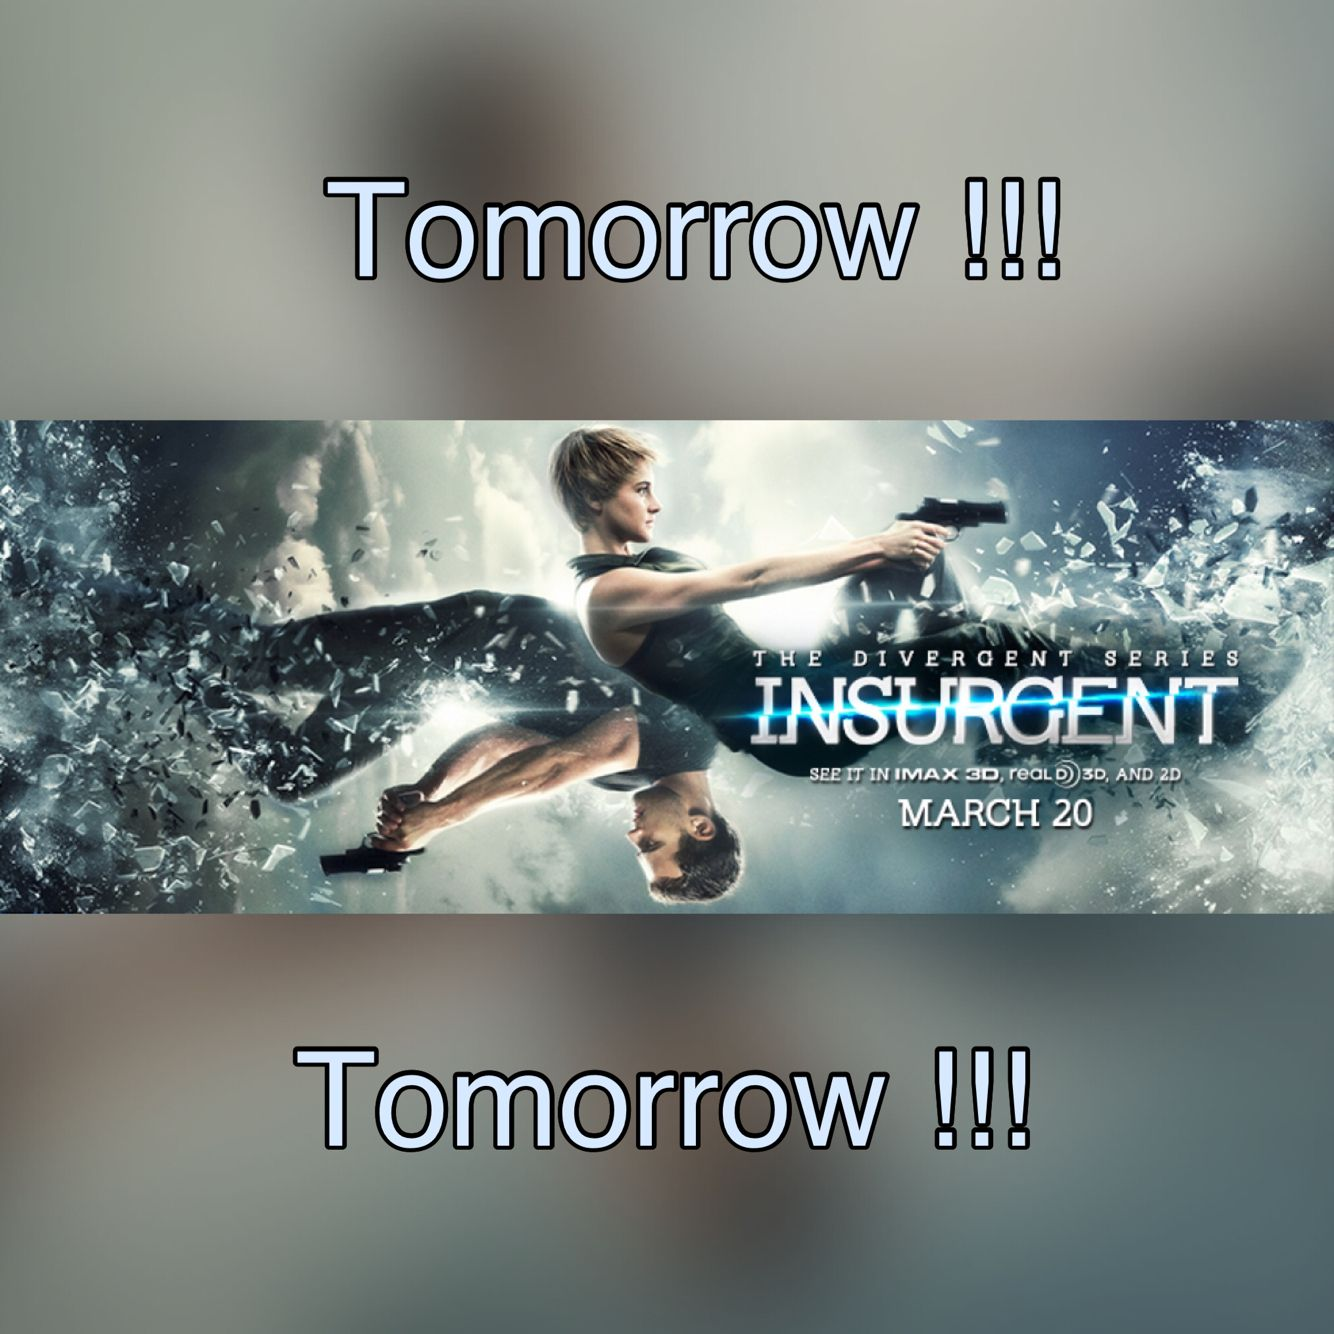 Tomorrow !!! Can't wait !!! The Divergent Series: Insurgent